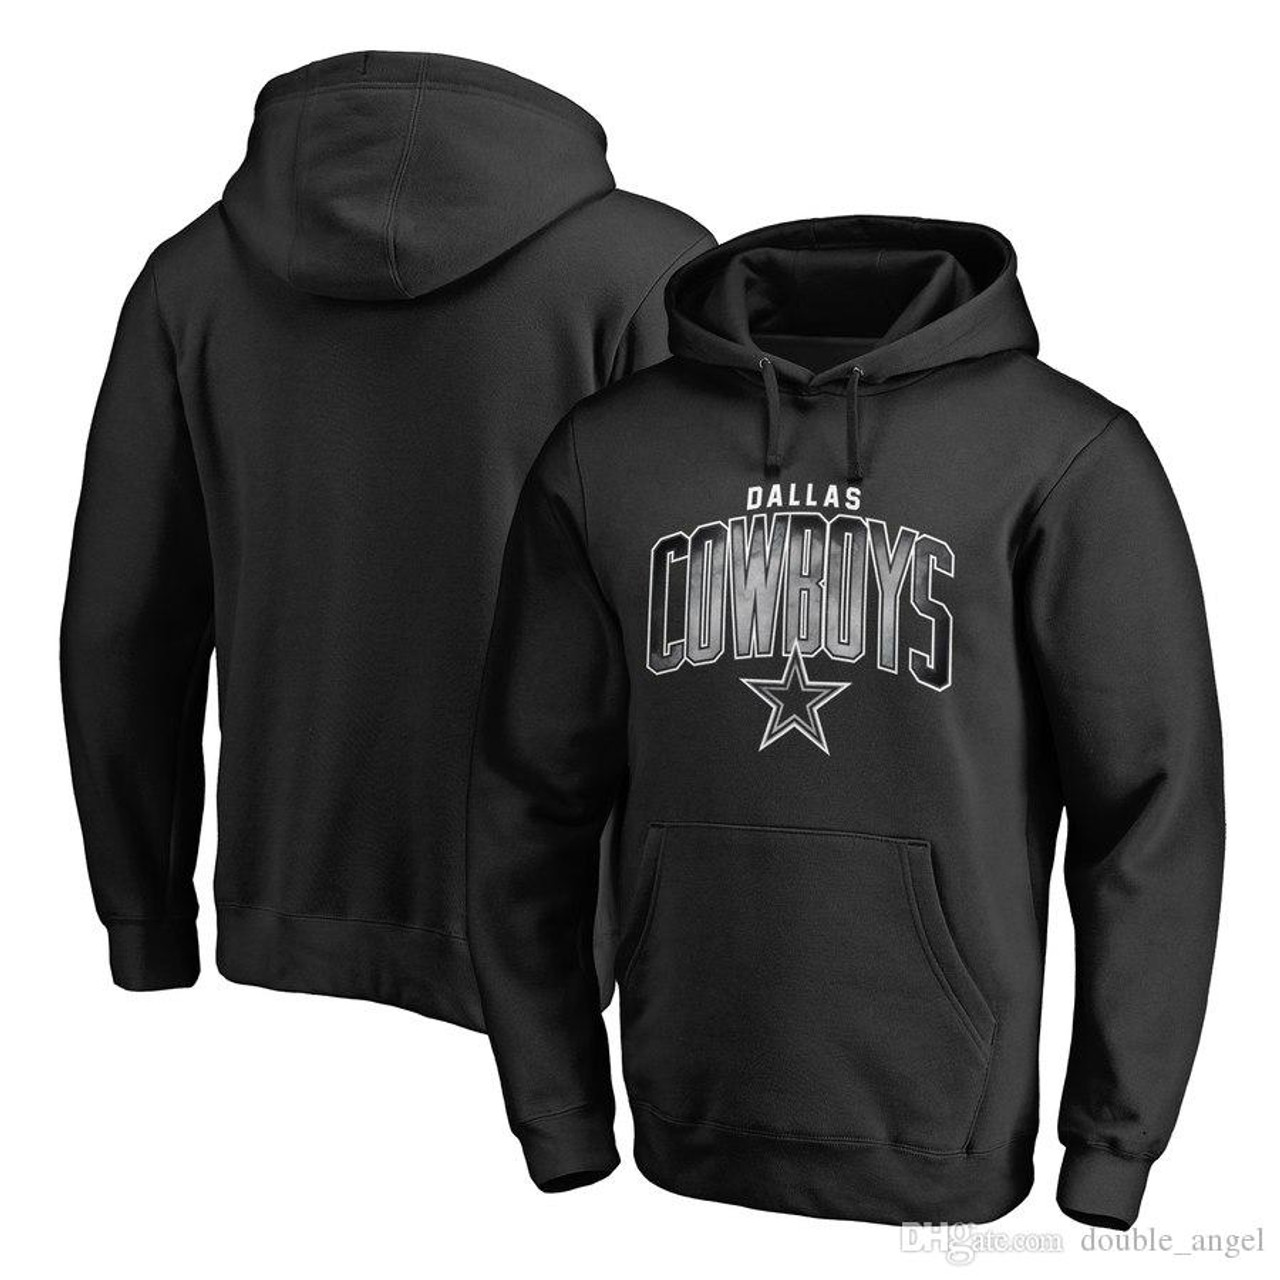 new products c06da ec072 **(OFFICIALLY-LICENSED-DALLAS-COWBOYS-PULLOVER-HOODIES/OFFICIAL-COWBOYS-TEAM-LOGOS  & FANACTICS-FOOTBALL-BRANDED/OFFICIAL-PRO-LINE-N.F.L.COWBOYS-TEAM-P...